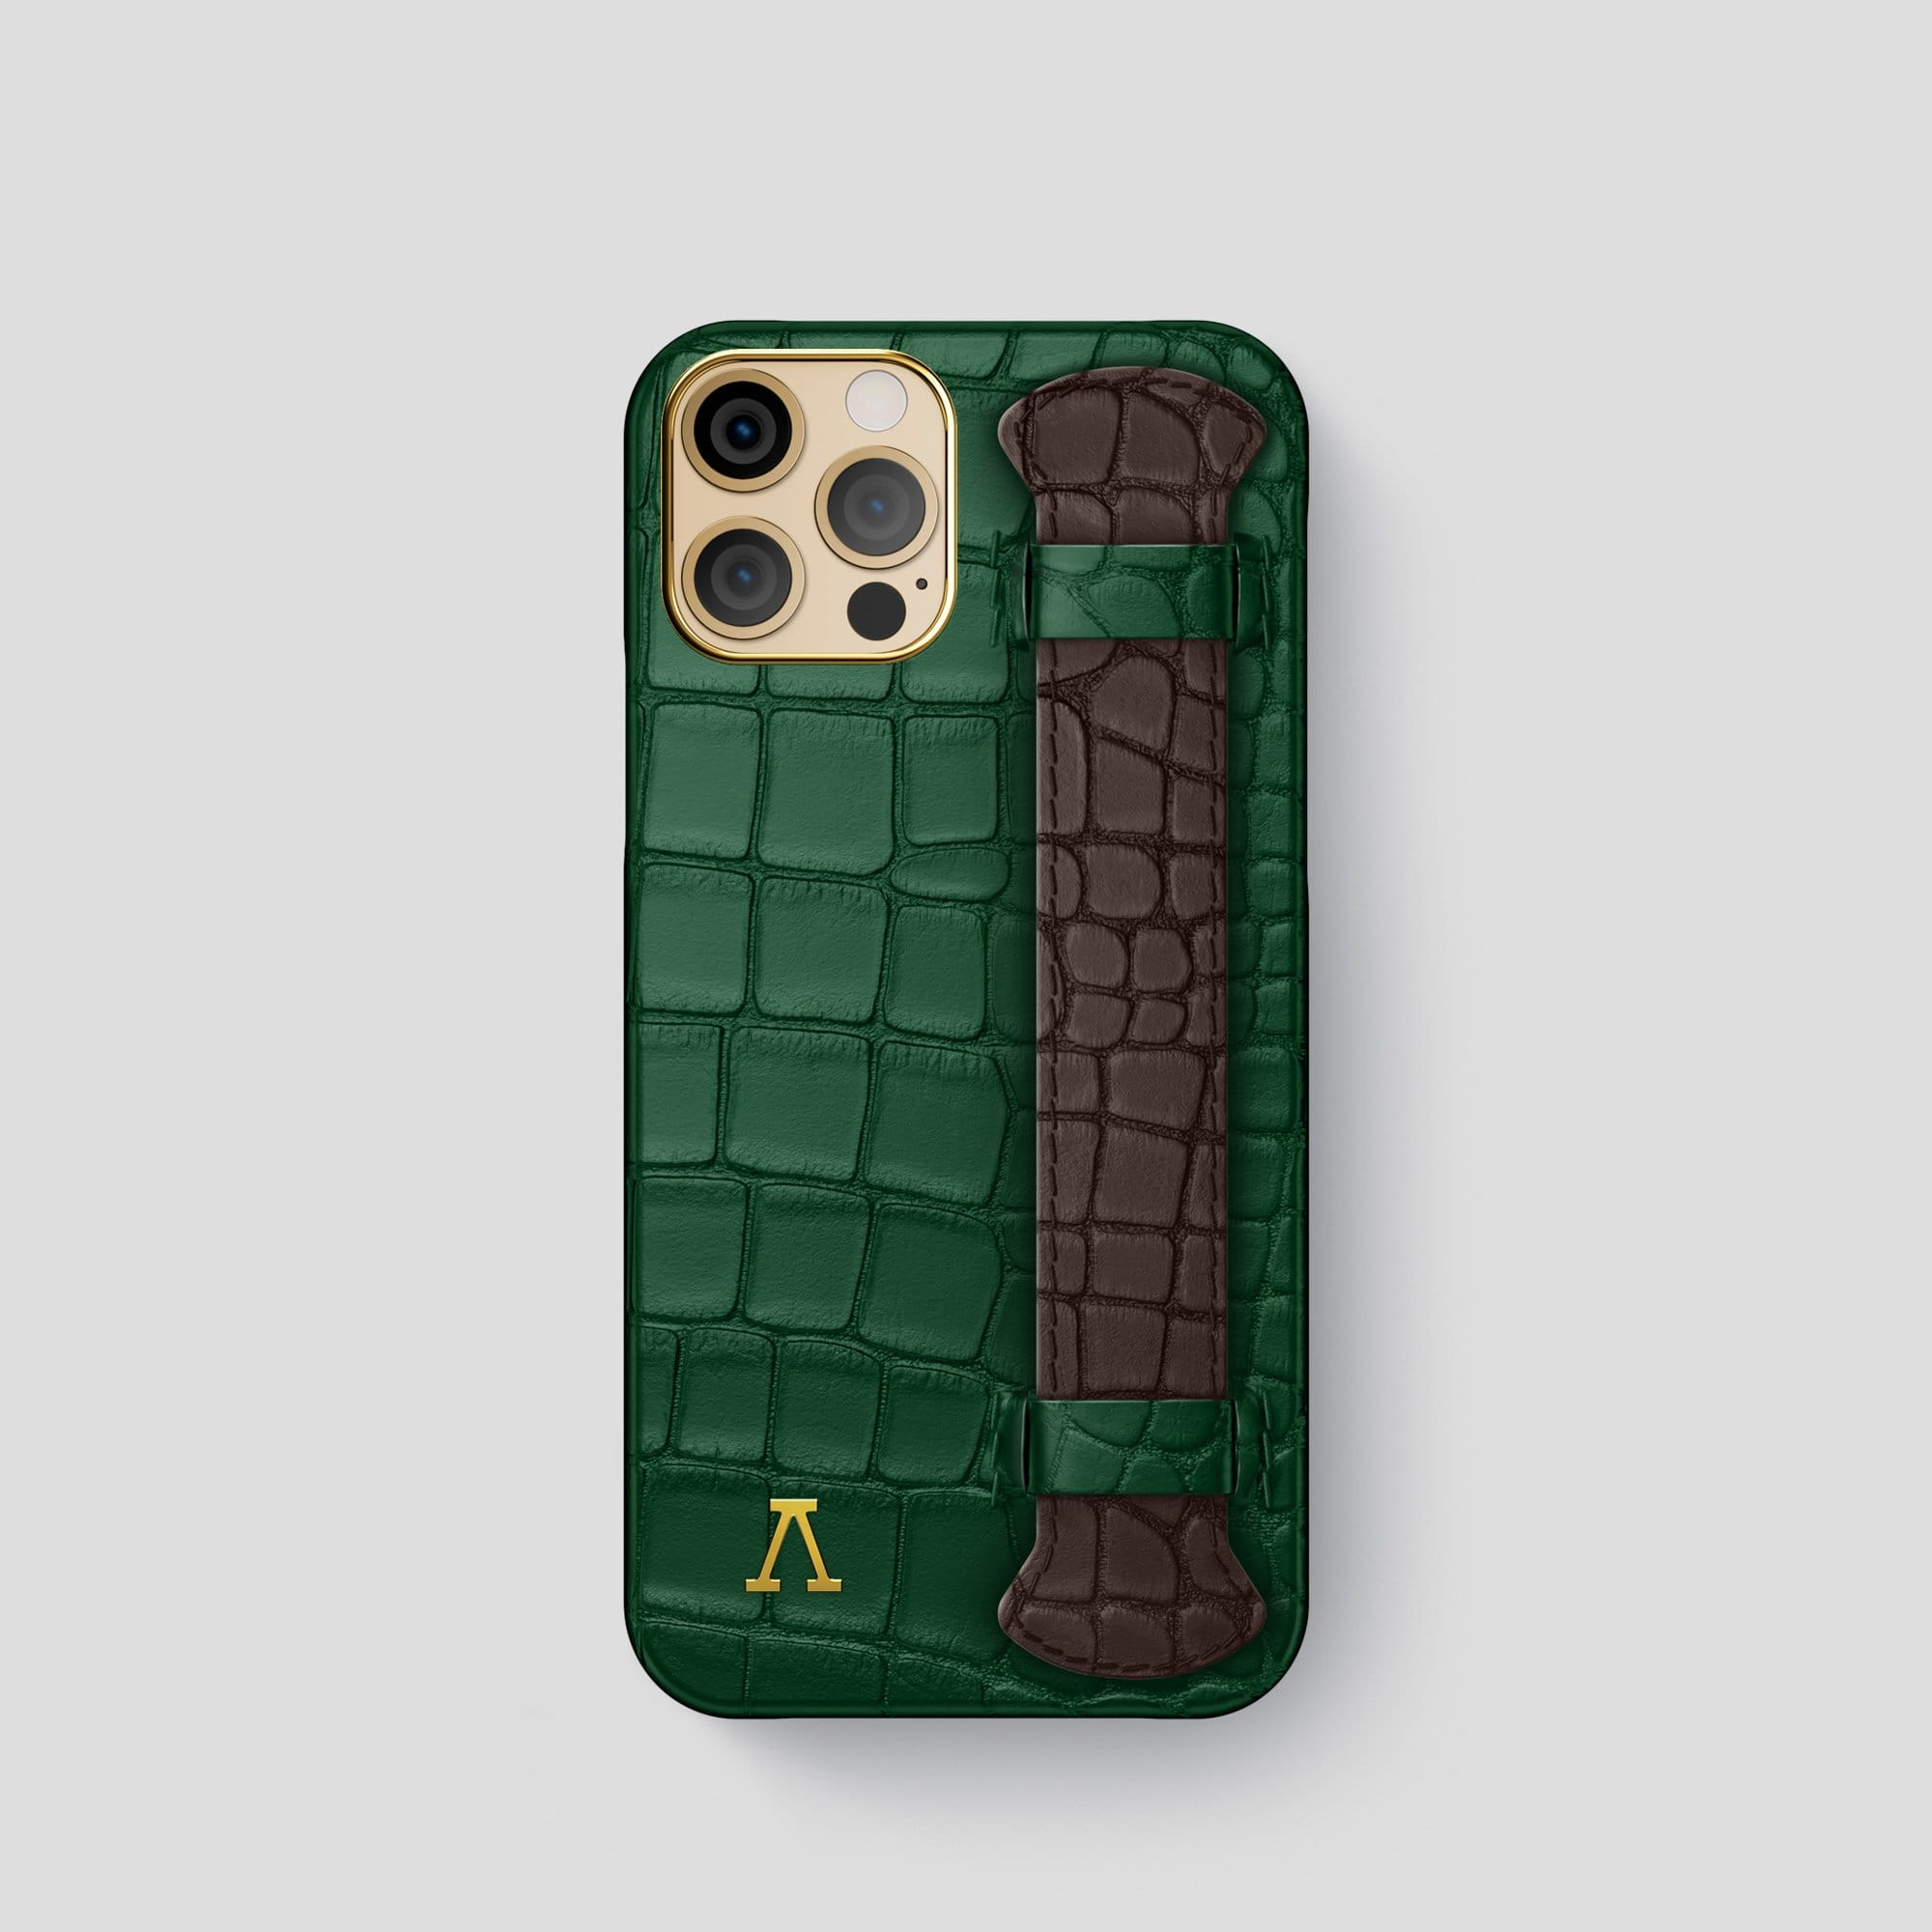 iPhone 12 Pro Strap Case Coloré Alligator